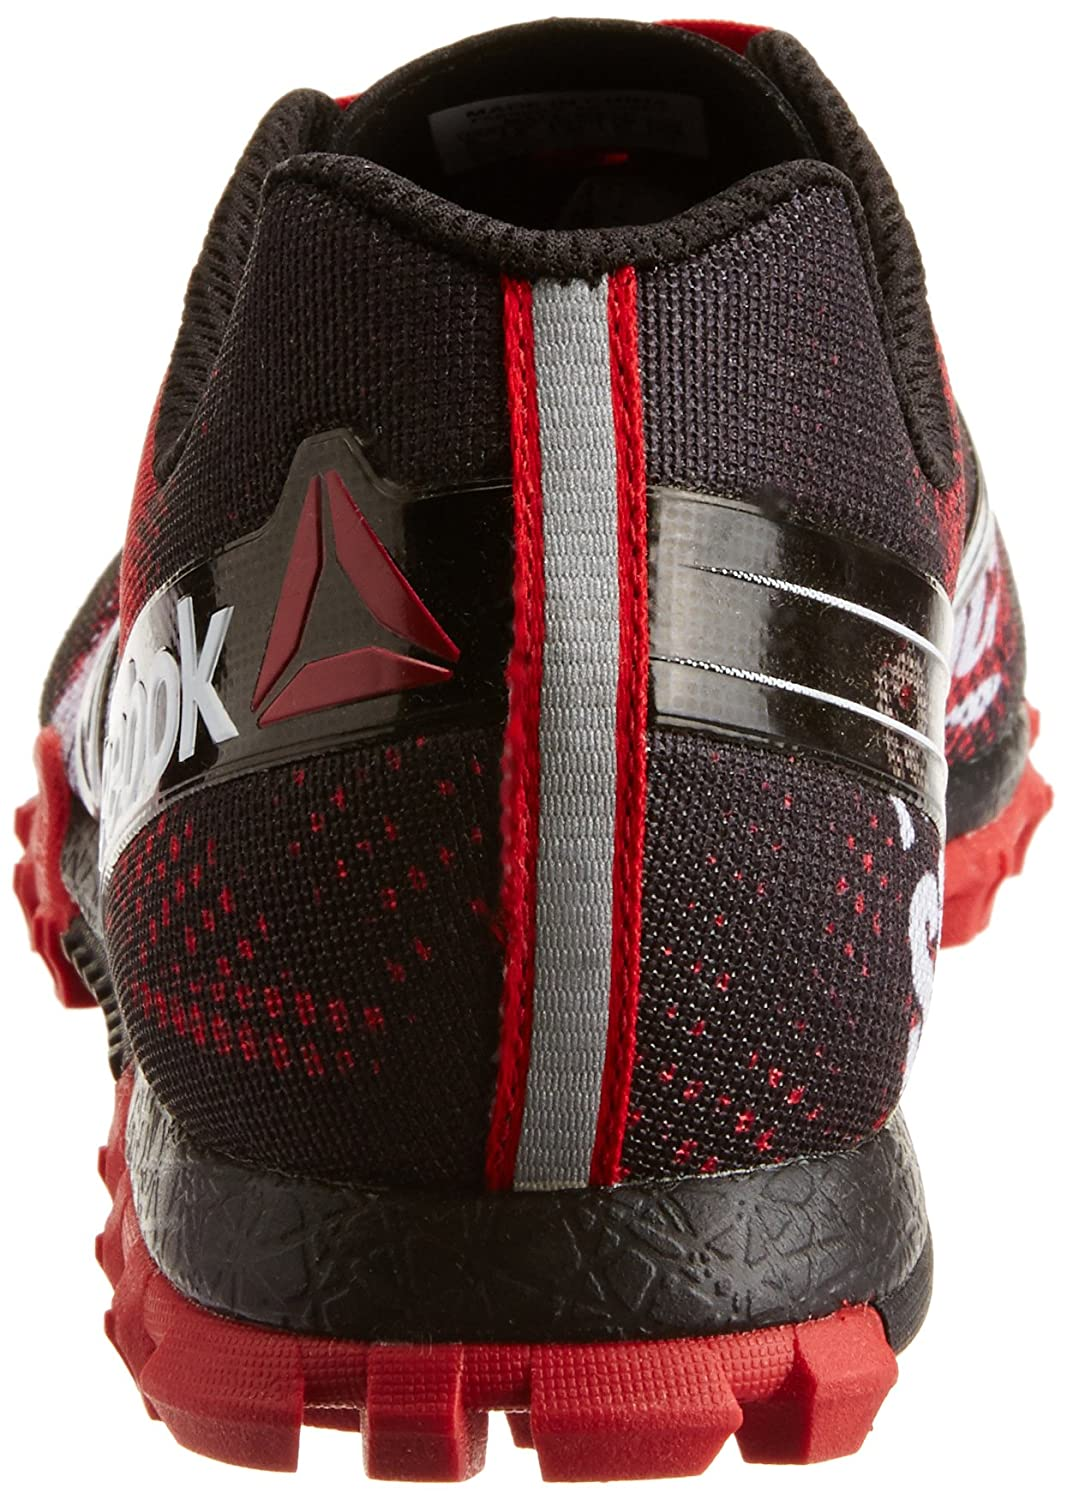 Reebok Sko For Menn Pris I India b23yUP